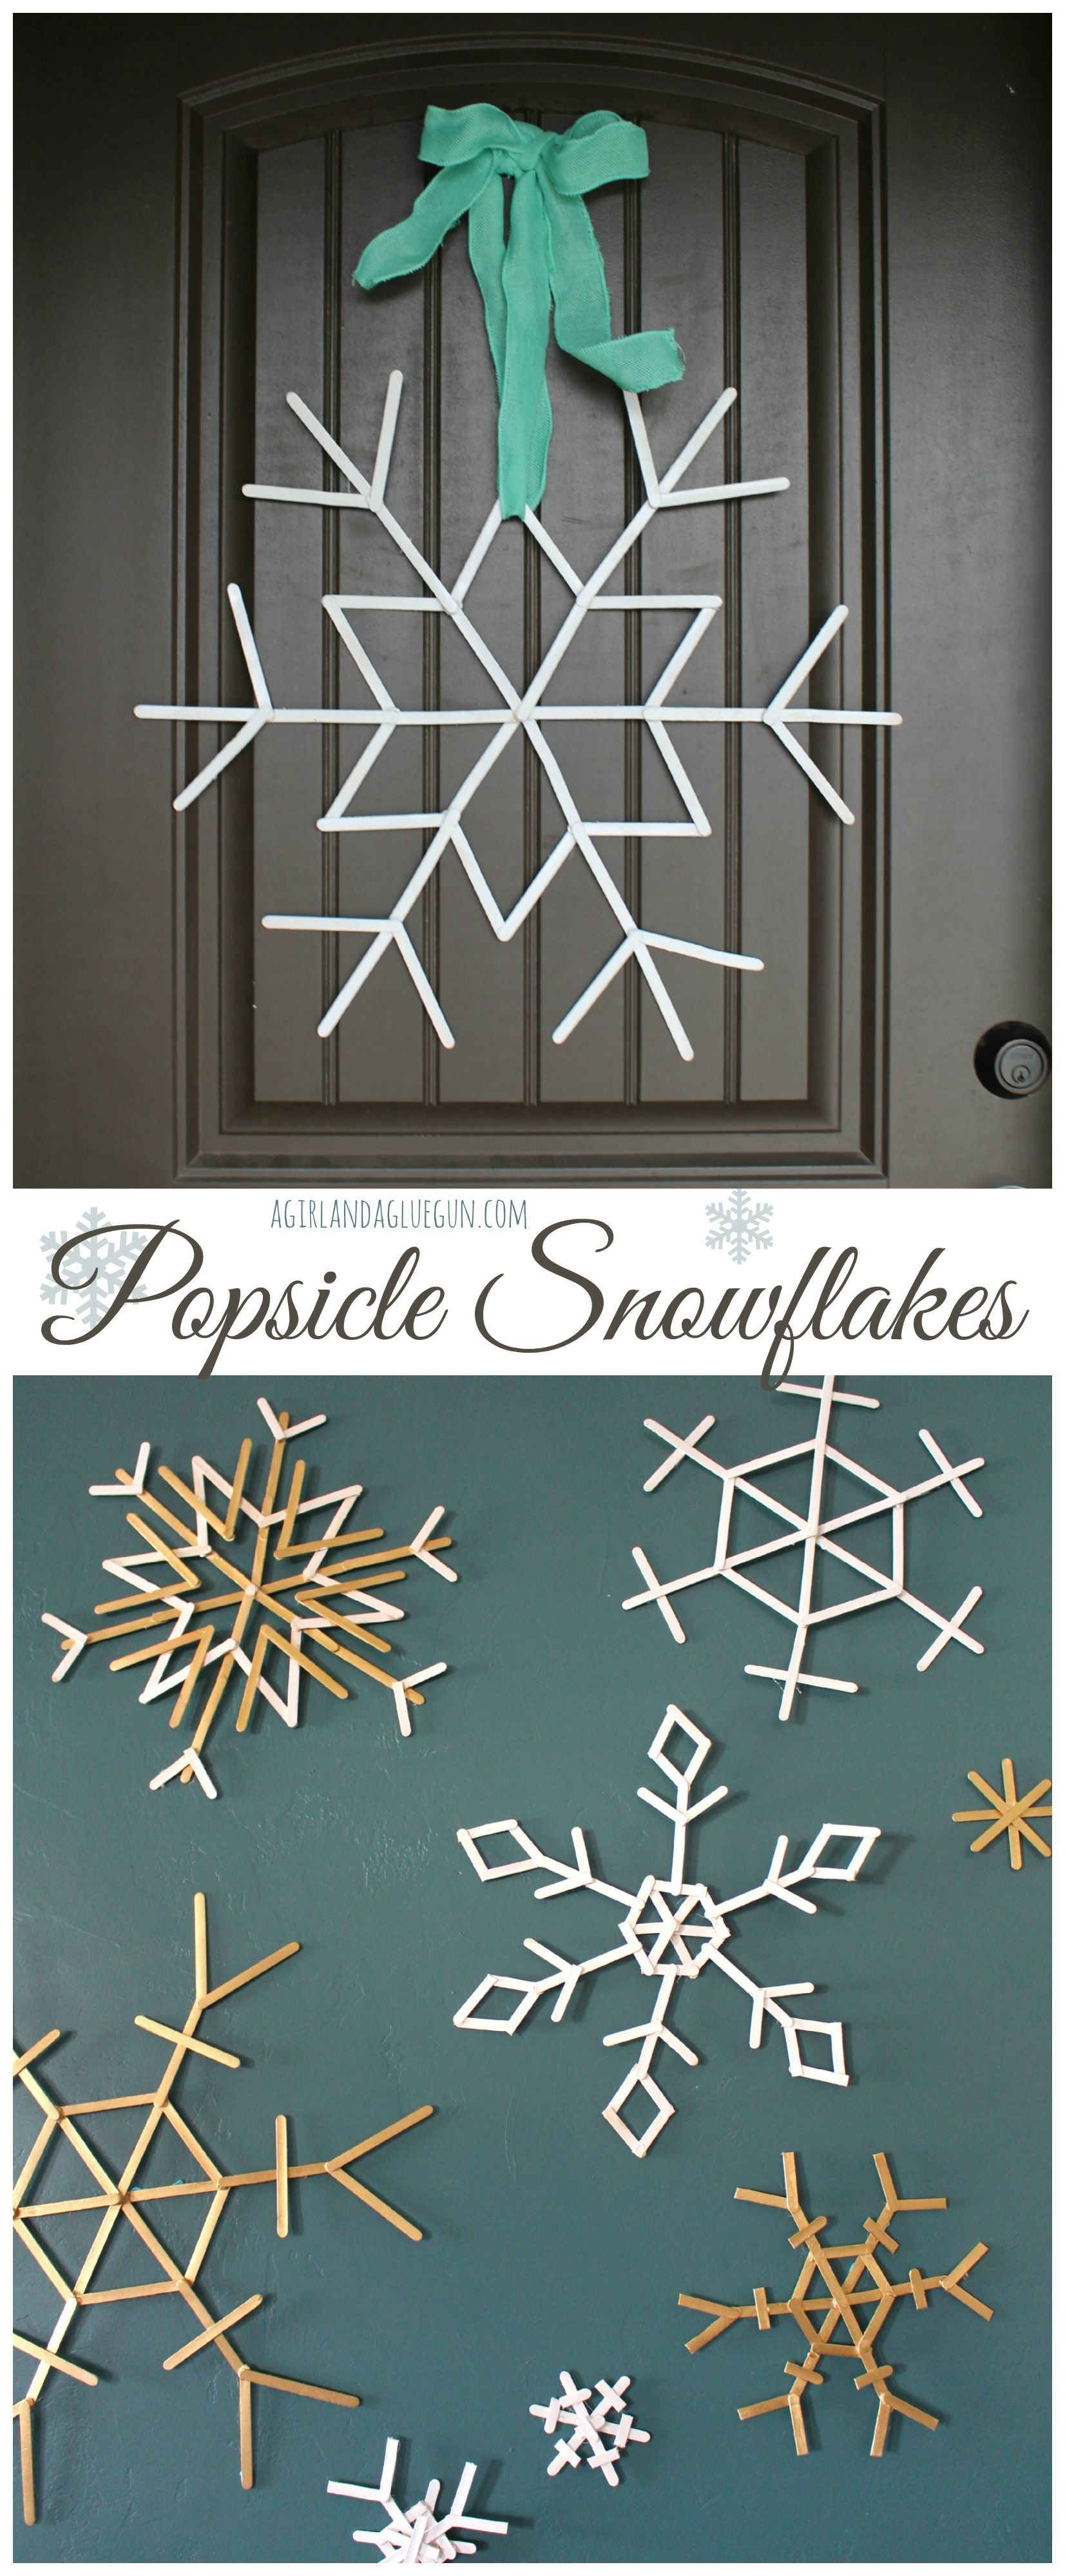 Popsicle snowflakes craft holidays and xmas